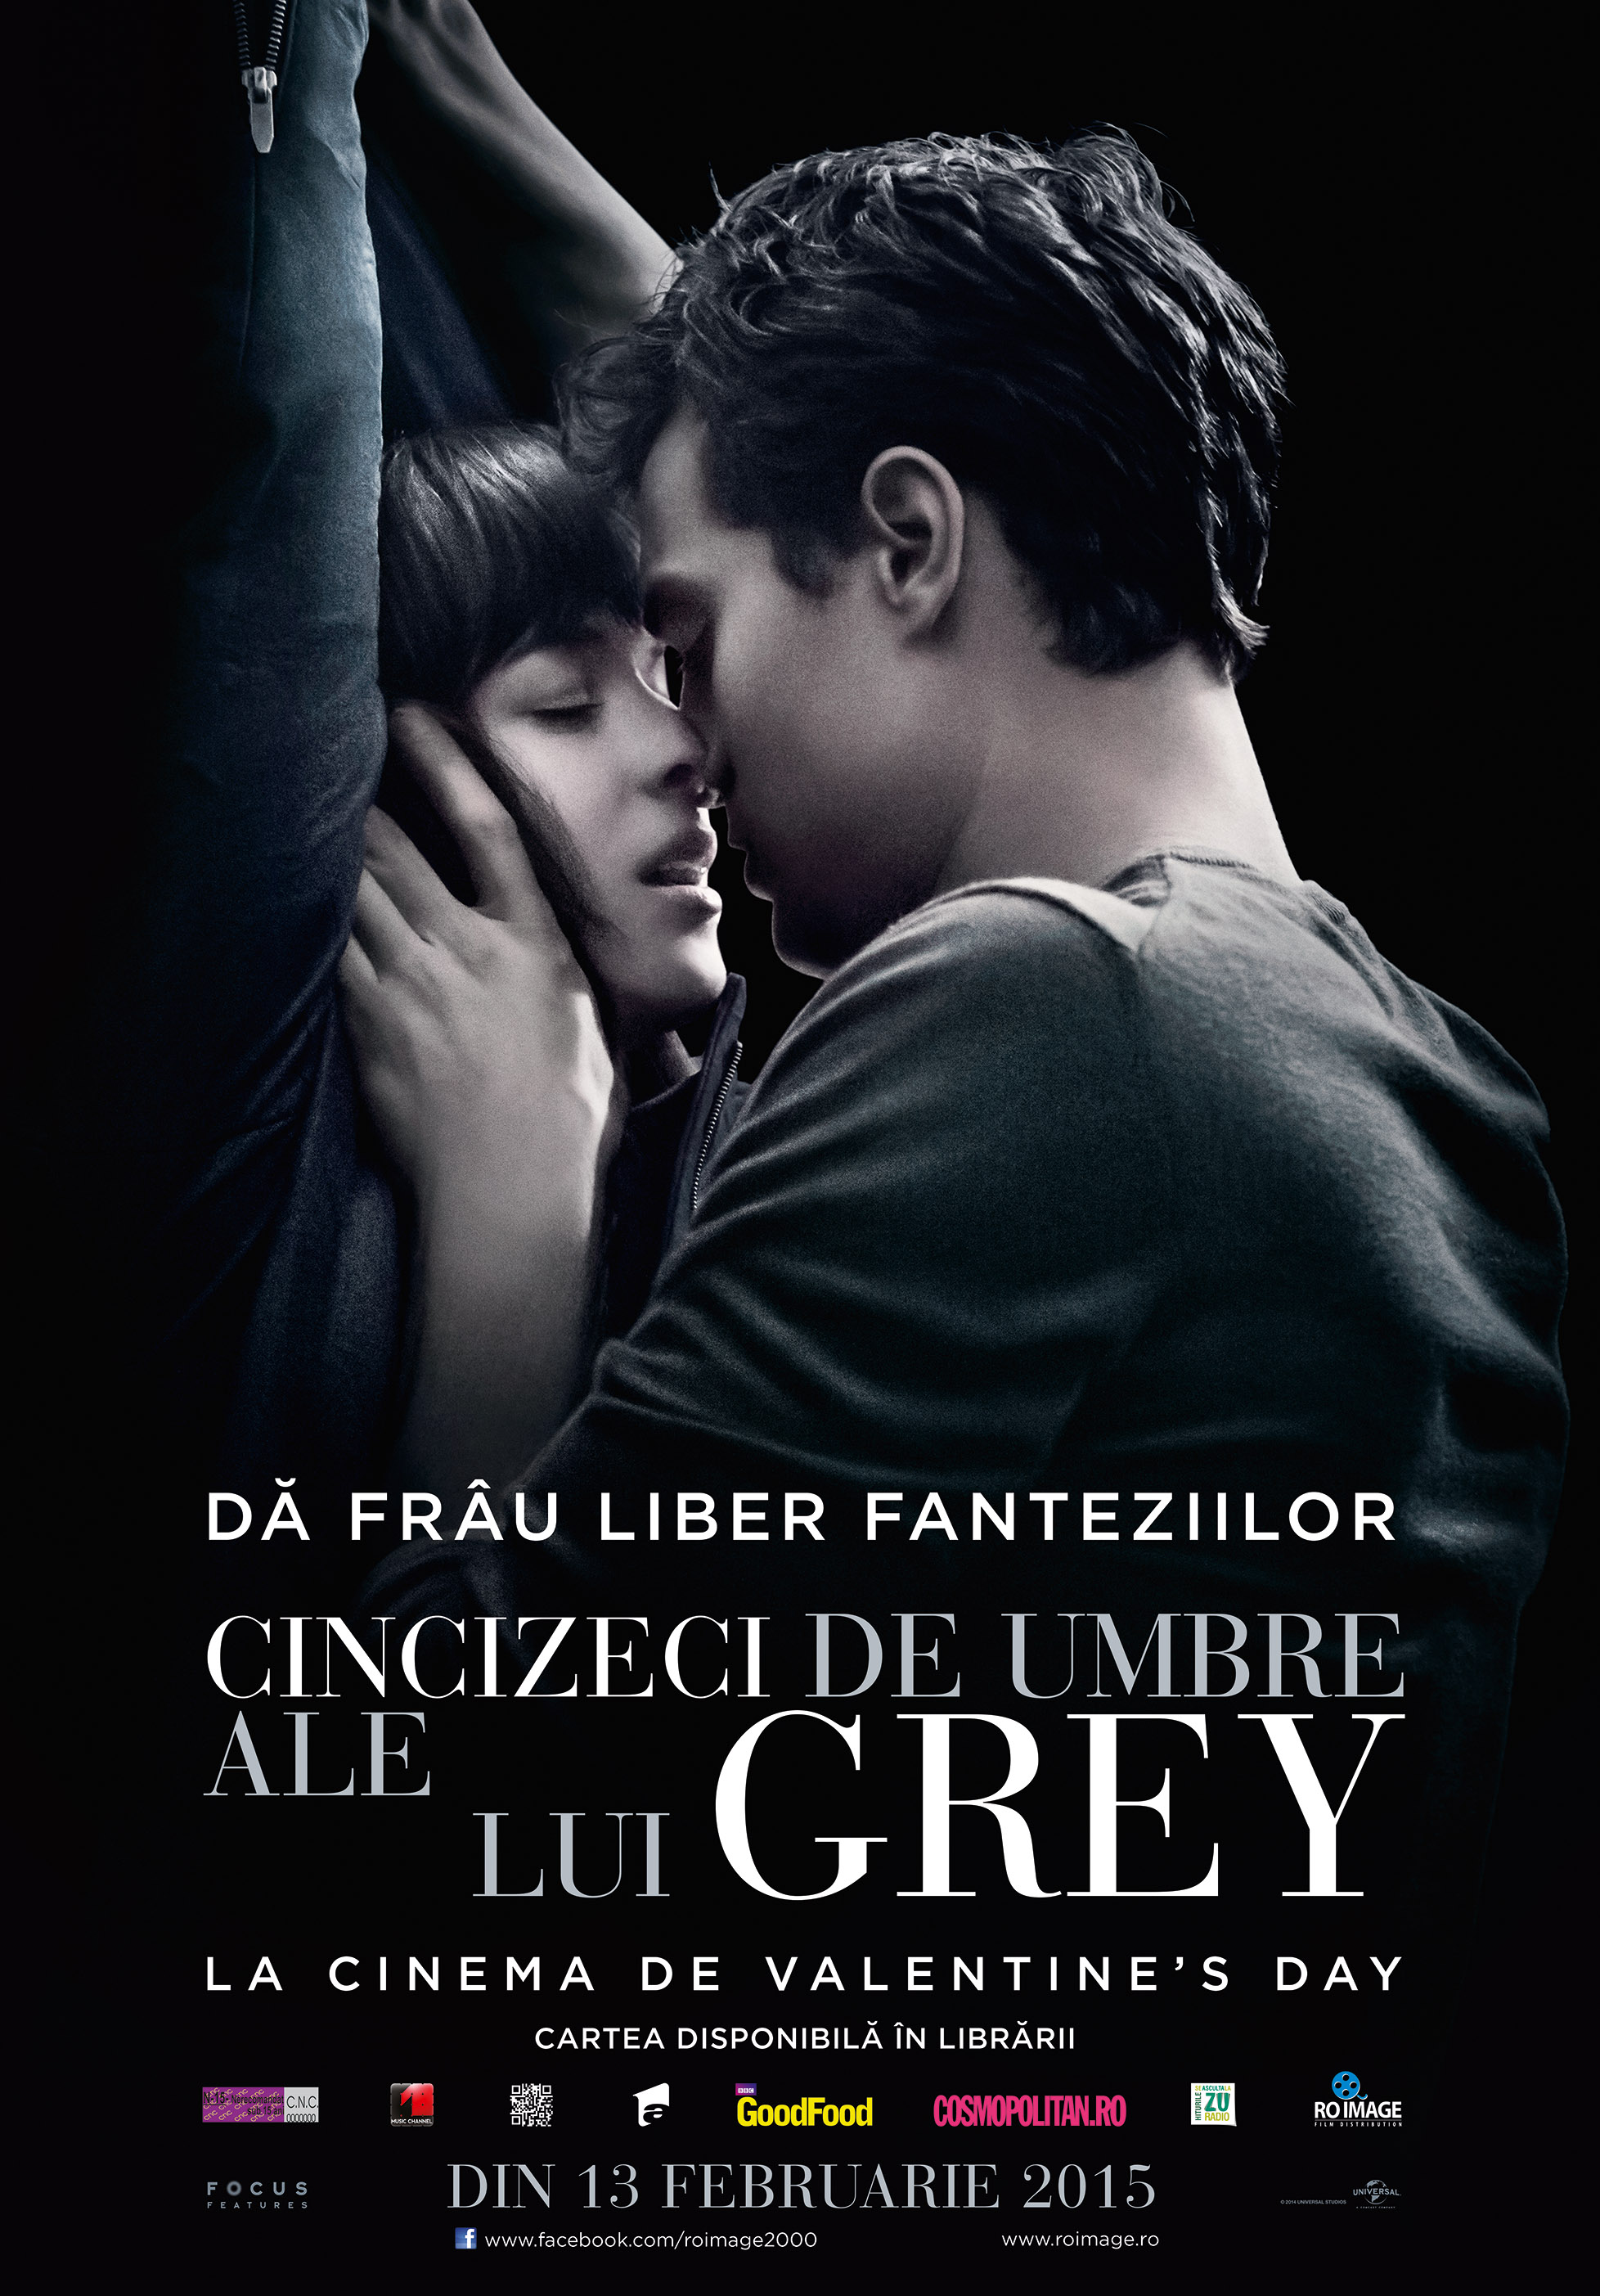 Cincizeci de umbre ale lui Grey / Fifty Shades of Grey (Premiera)